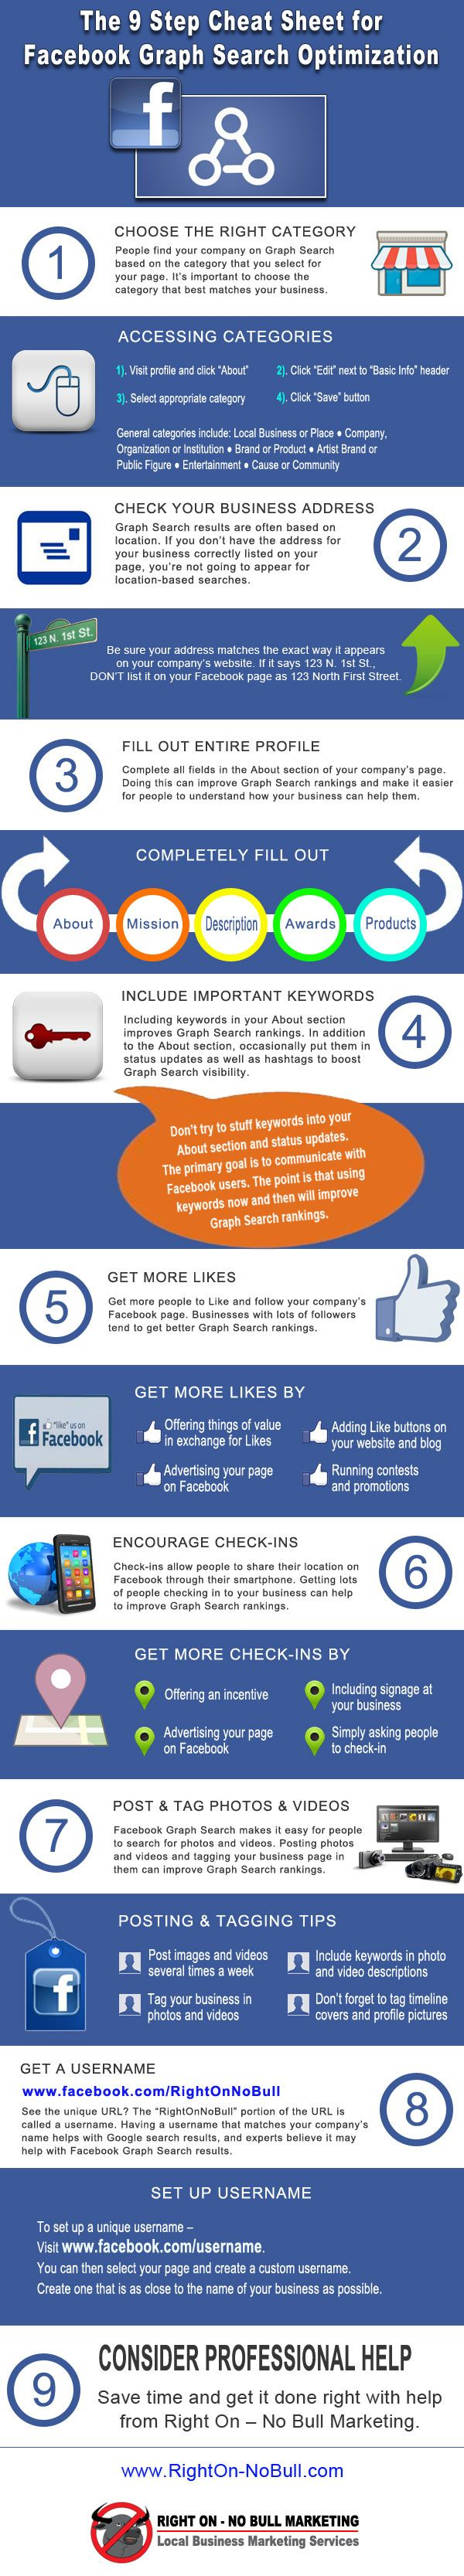 9 Steps To Facebook Graph Search Optimization #infographic